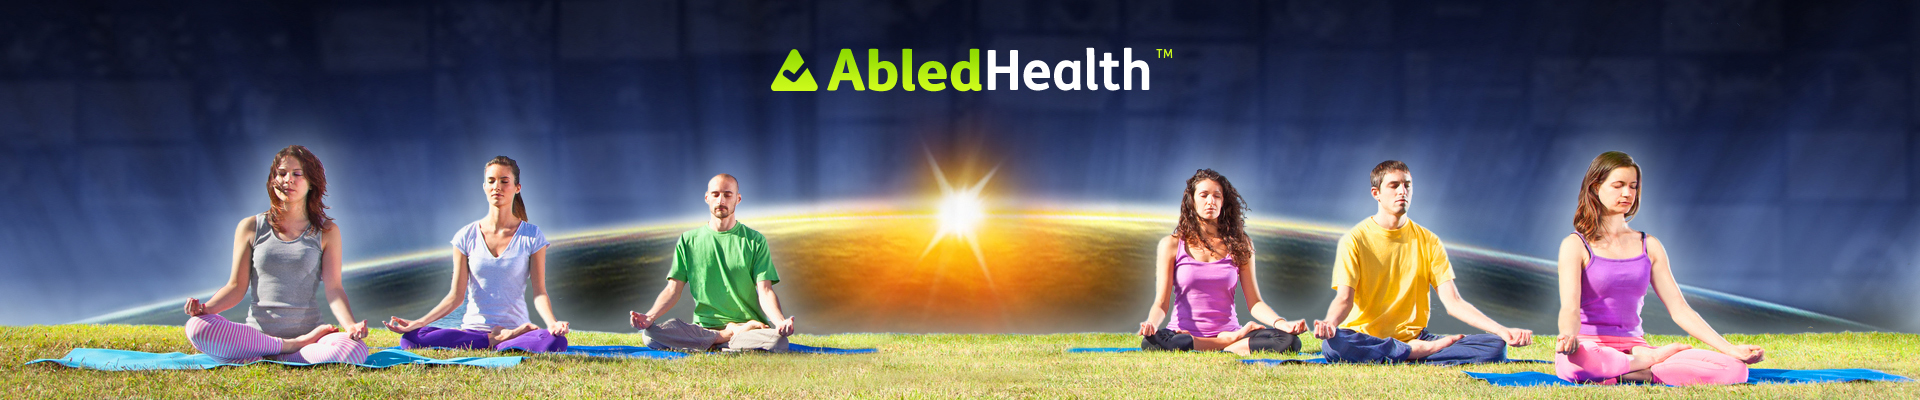 AbledHealth banner shows 4 people meditating in the lotus position on the grass in front of a digital backdrop of a sunrise over the edge of the earth.